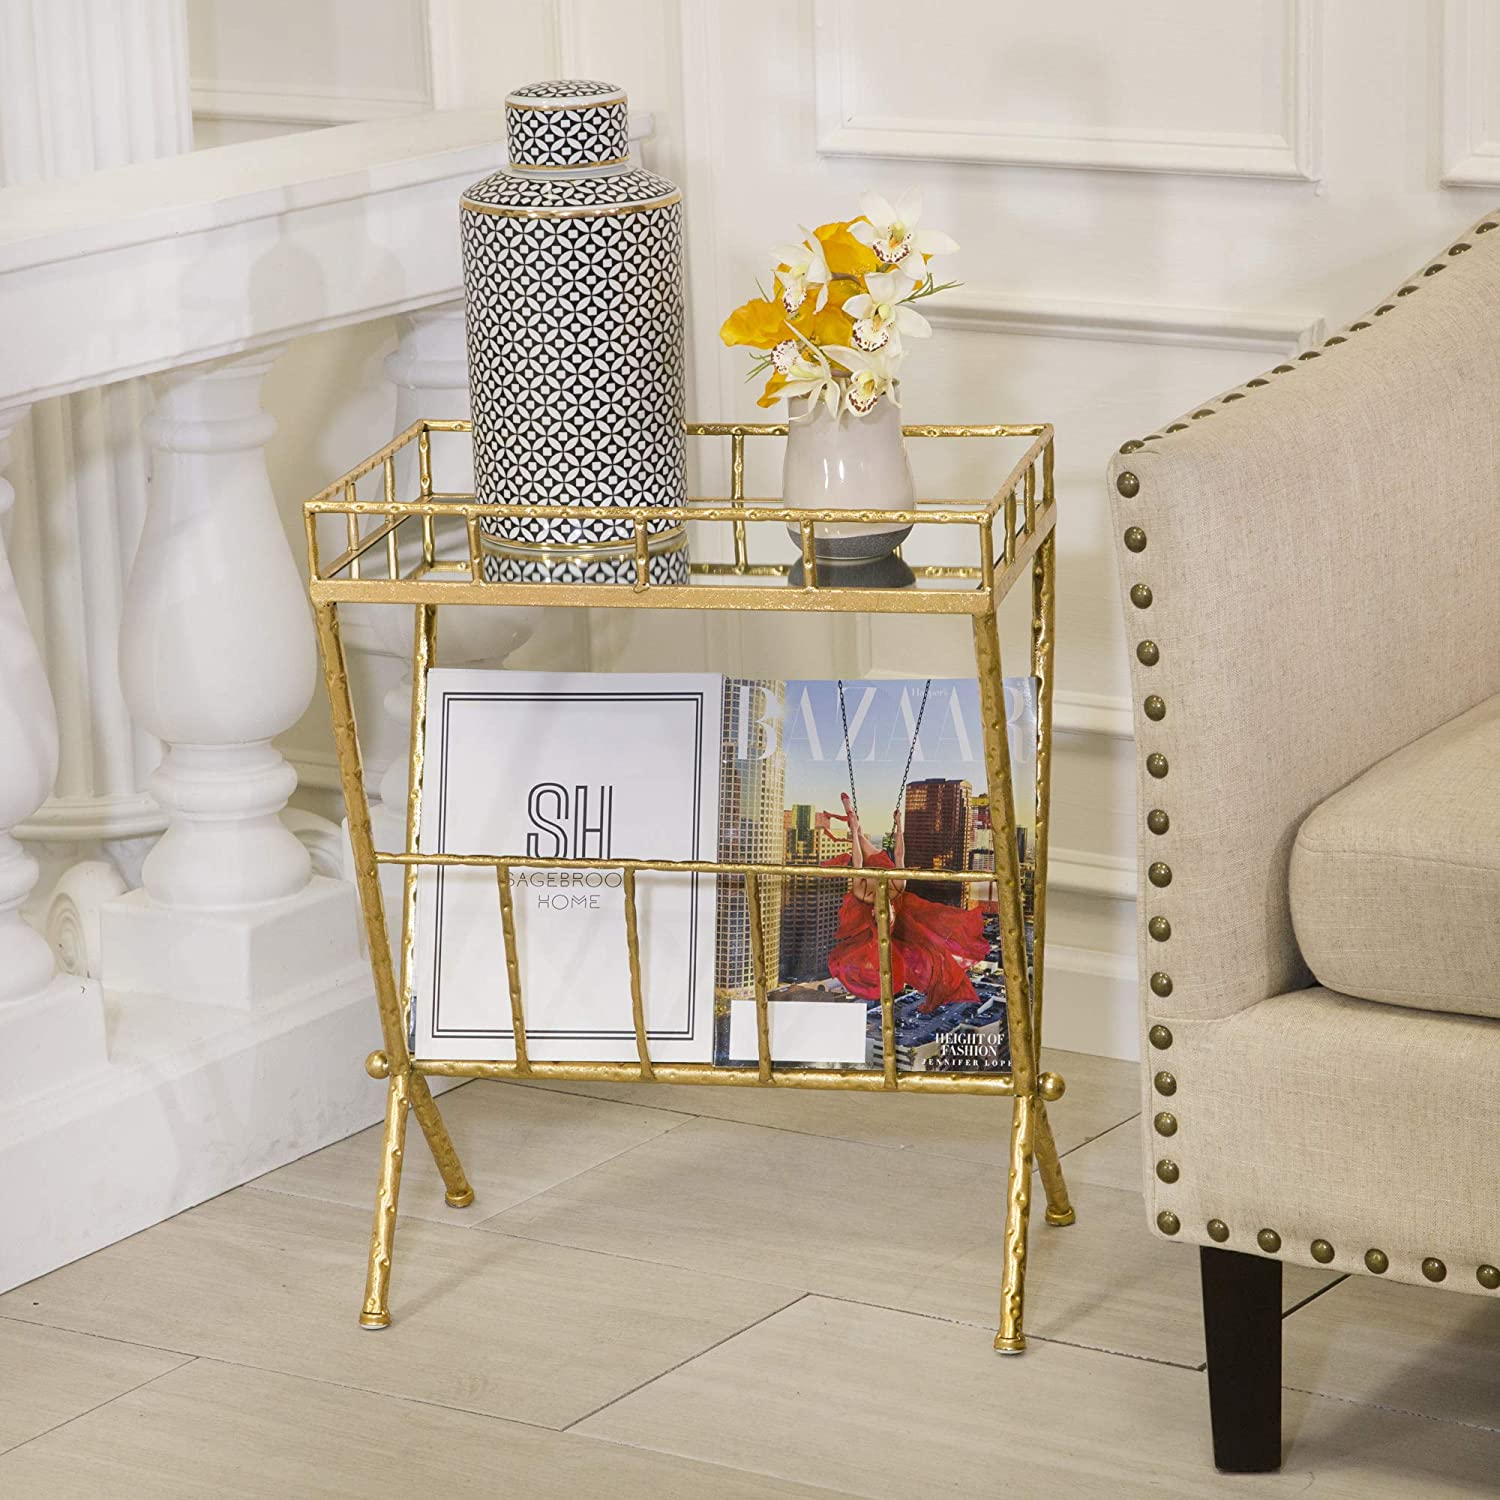 Sagebrook Home Metal & Glass Magazine Rack Accent Table, Gold Metal/Mirror/Mdf, 18 x 12 x 23.25 Inches